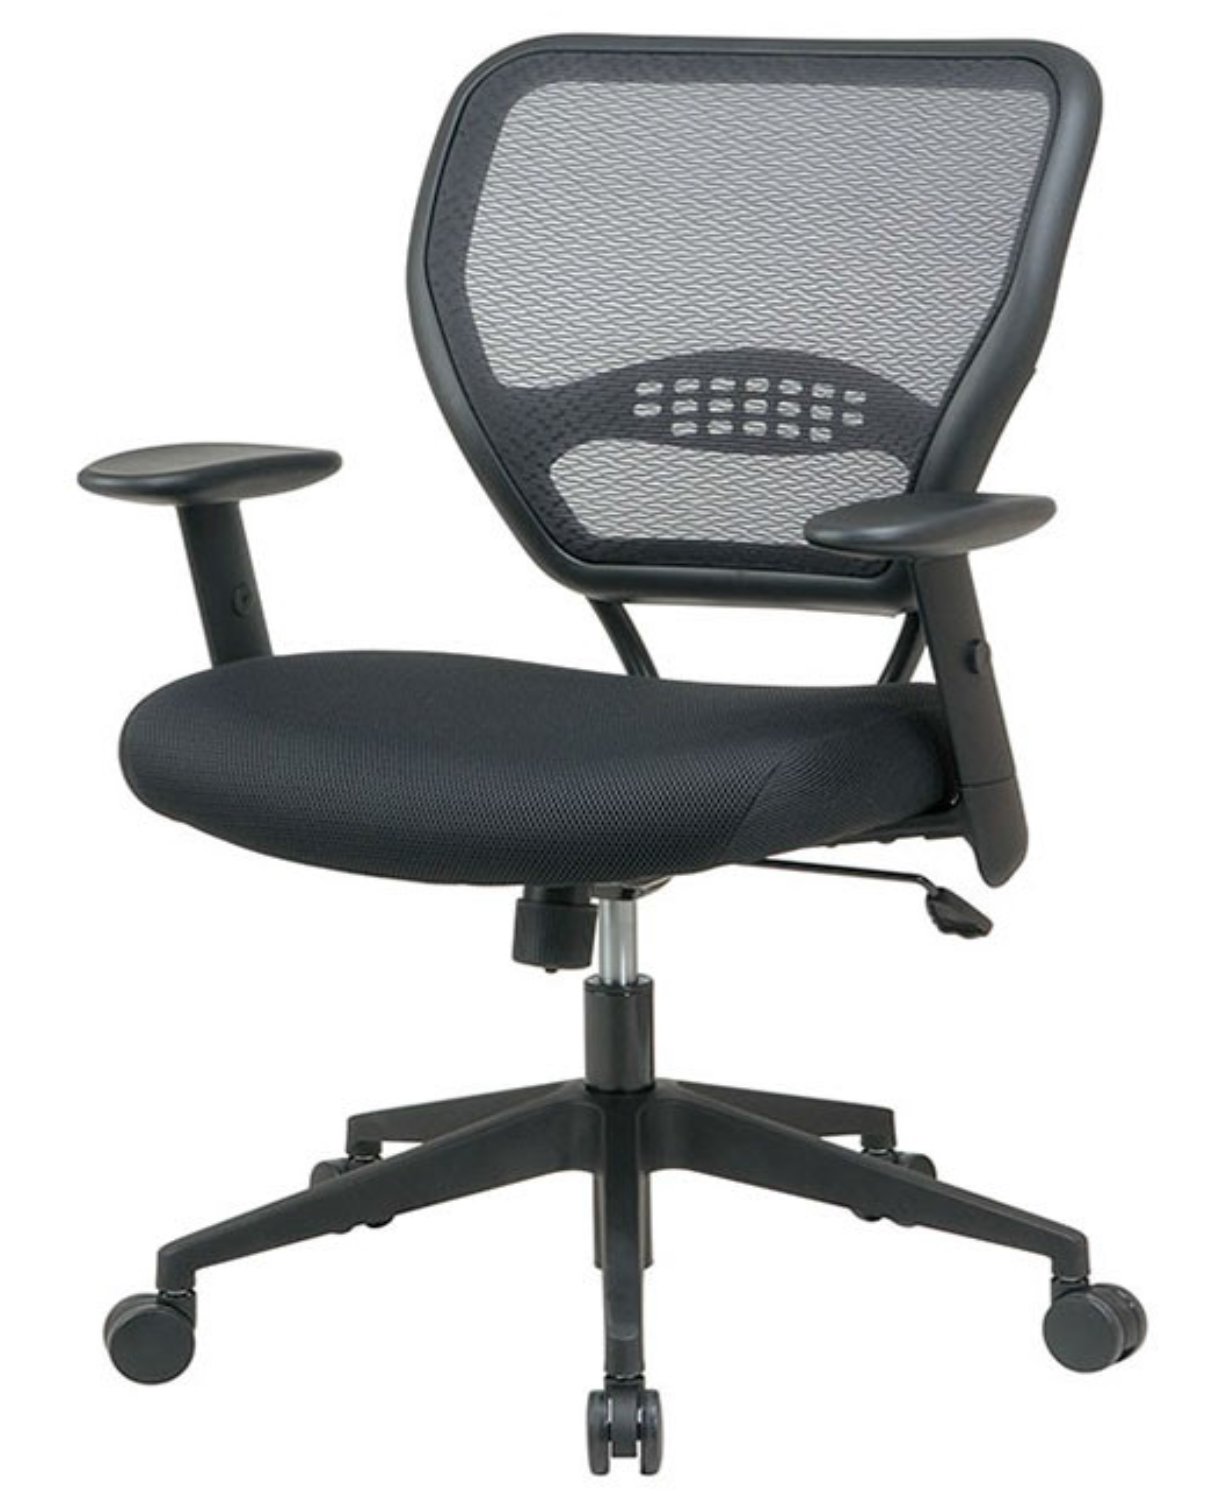 Professional Air Grid Back Managers Chair With Black Mesh Seat